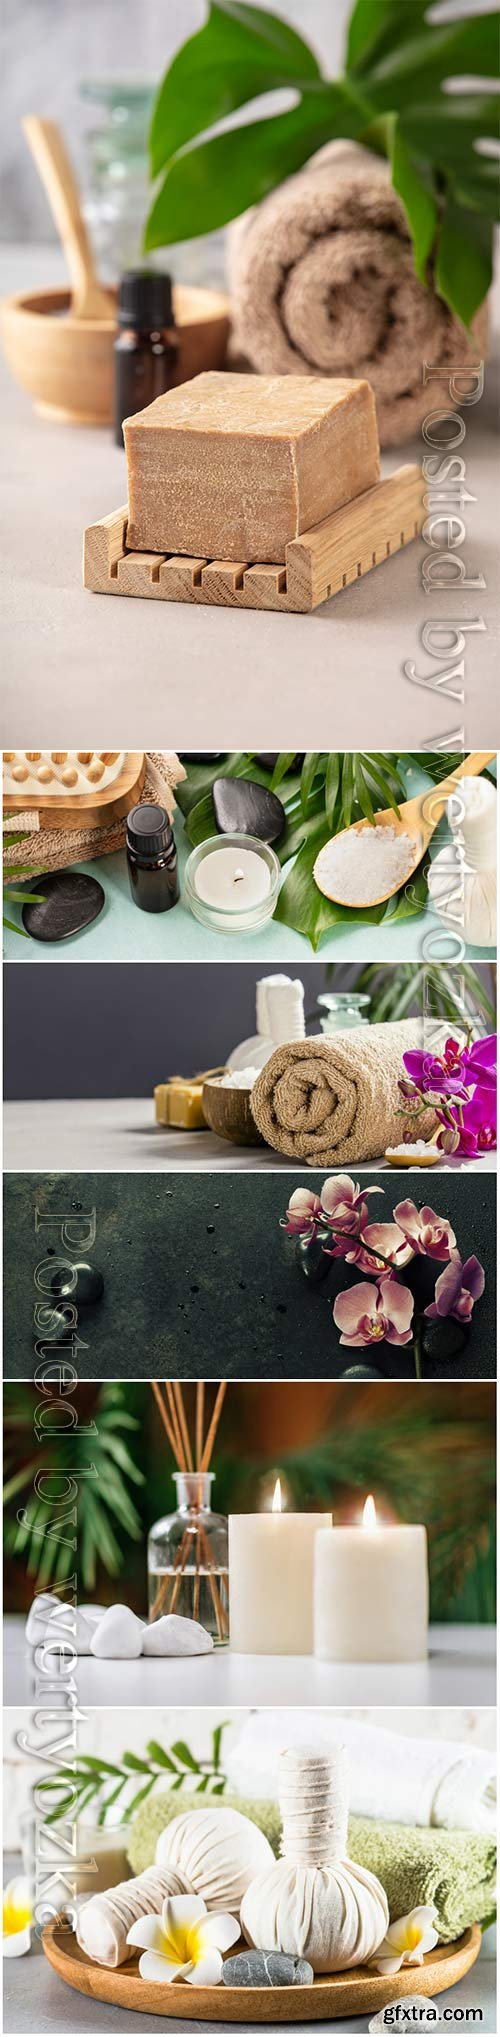 Spa and relaxation concept